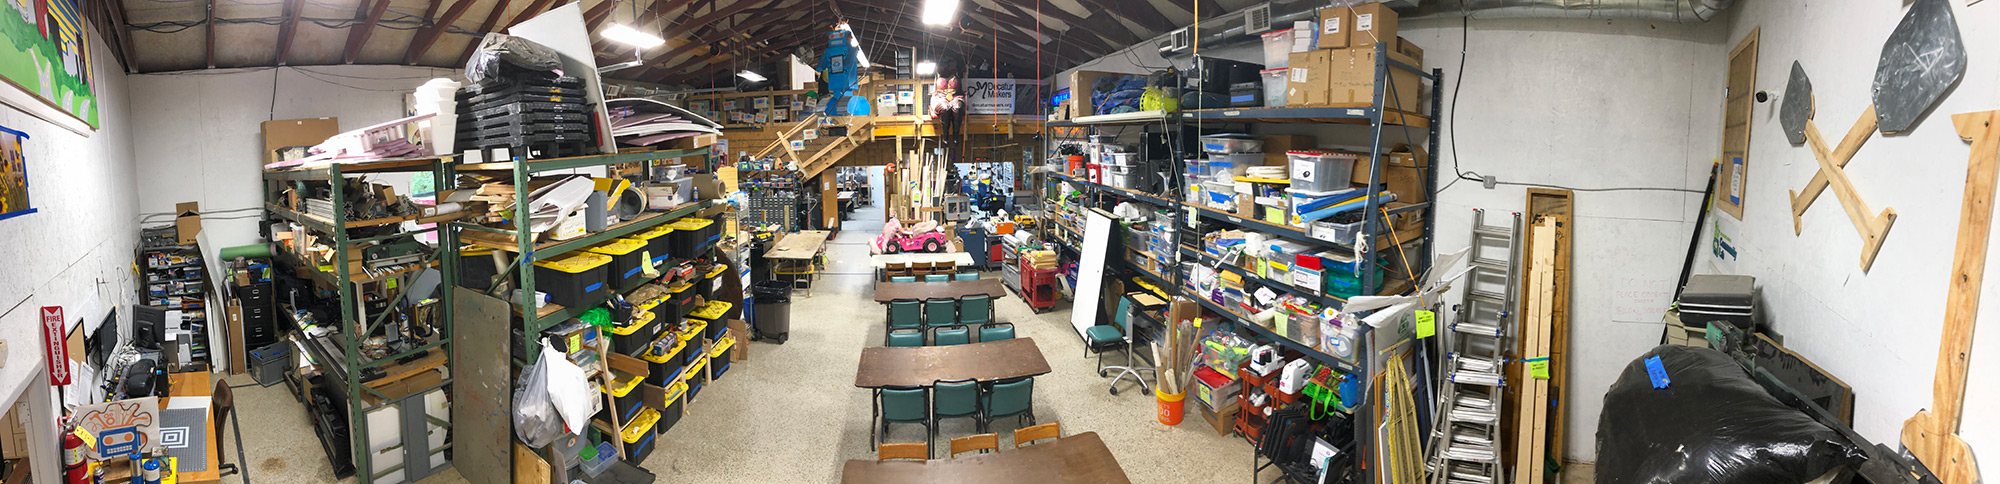 Inside the Decatur Makerspace